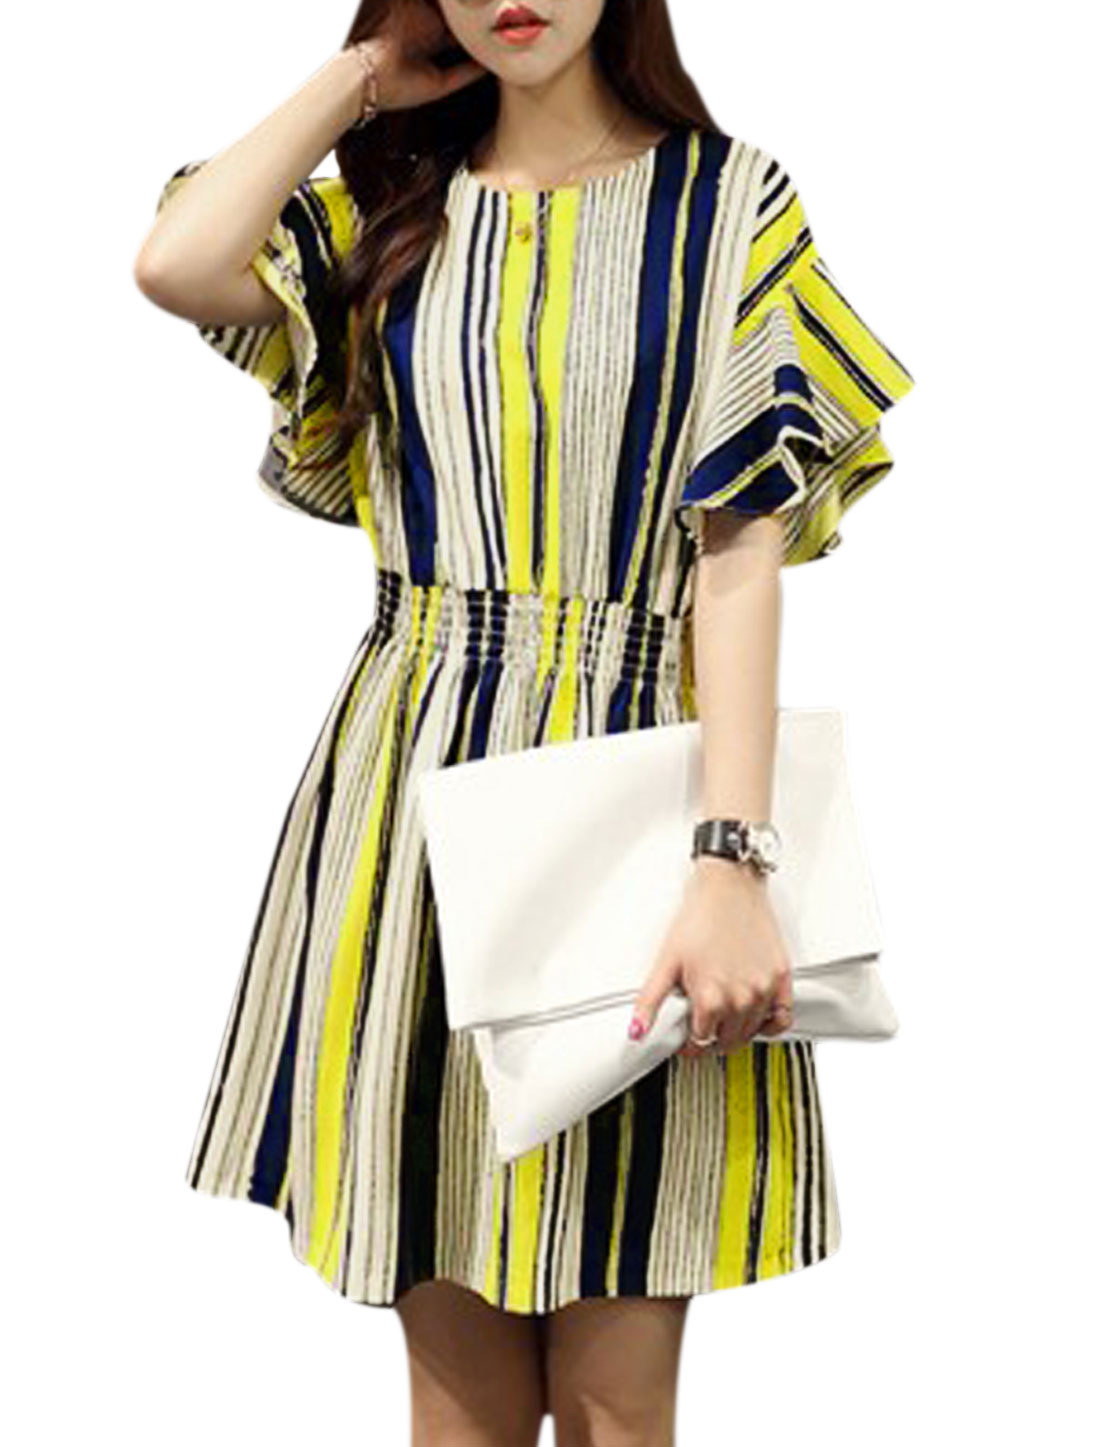 Women Vertical Stripes Smocked Waist Unlined A Line Dress Yellow Navy Blue S